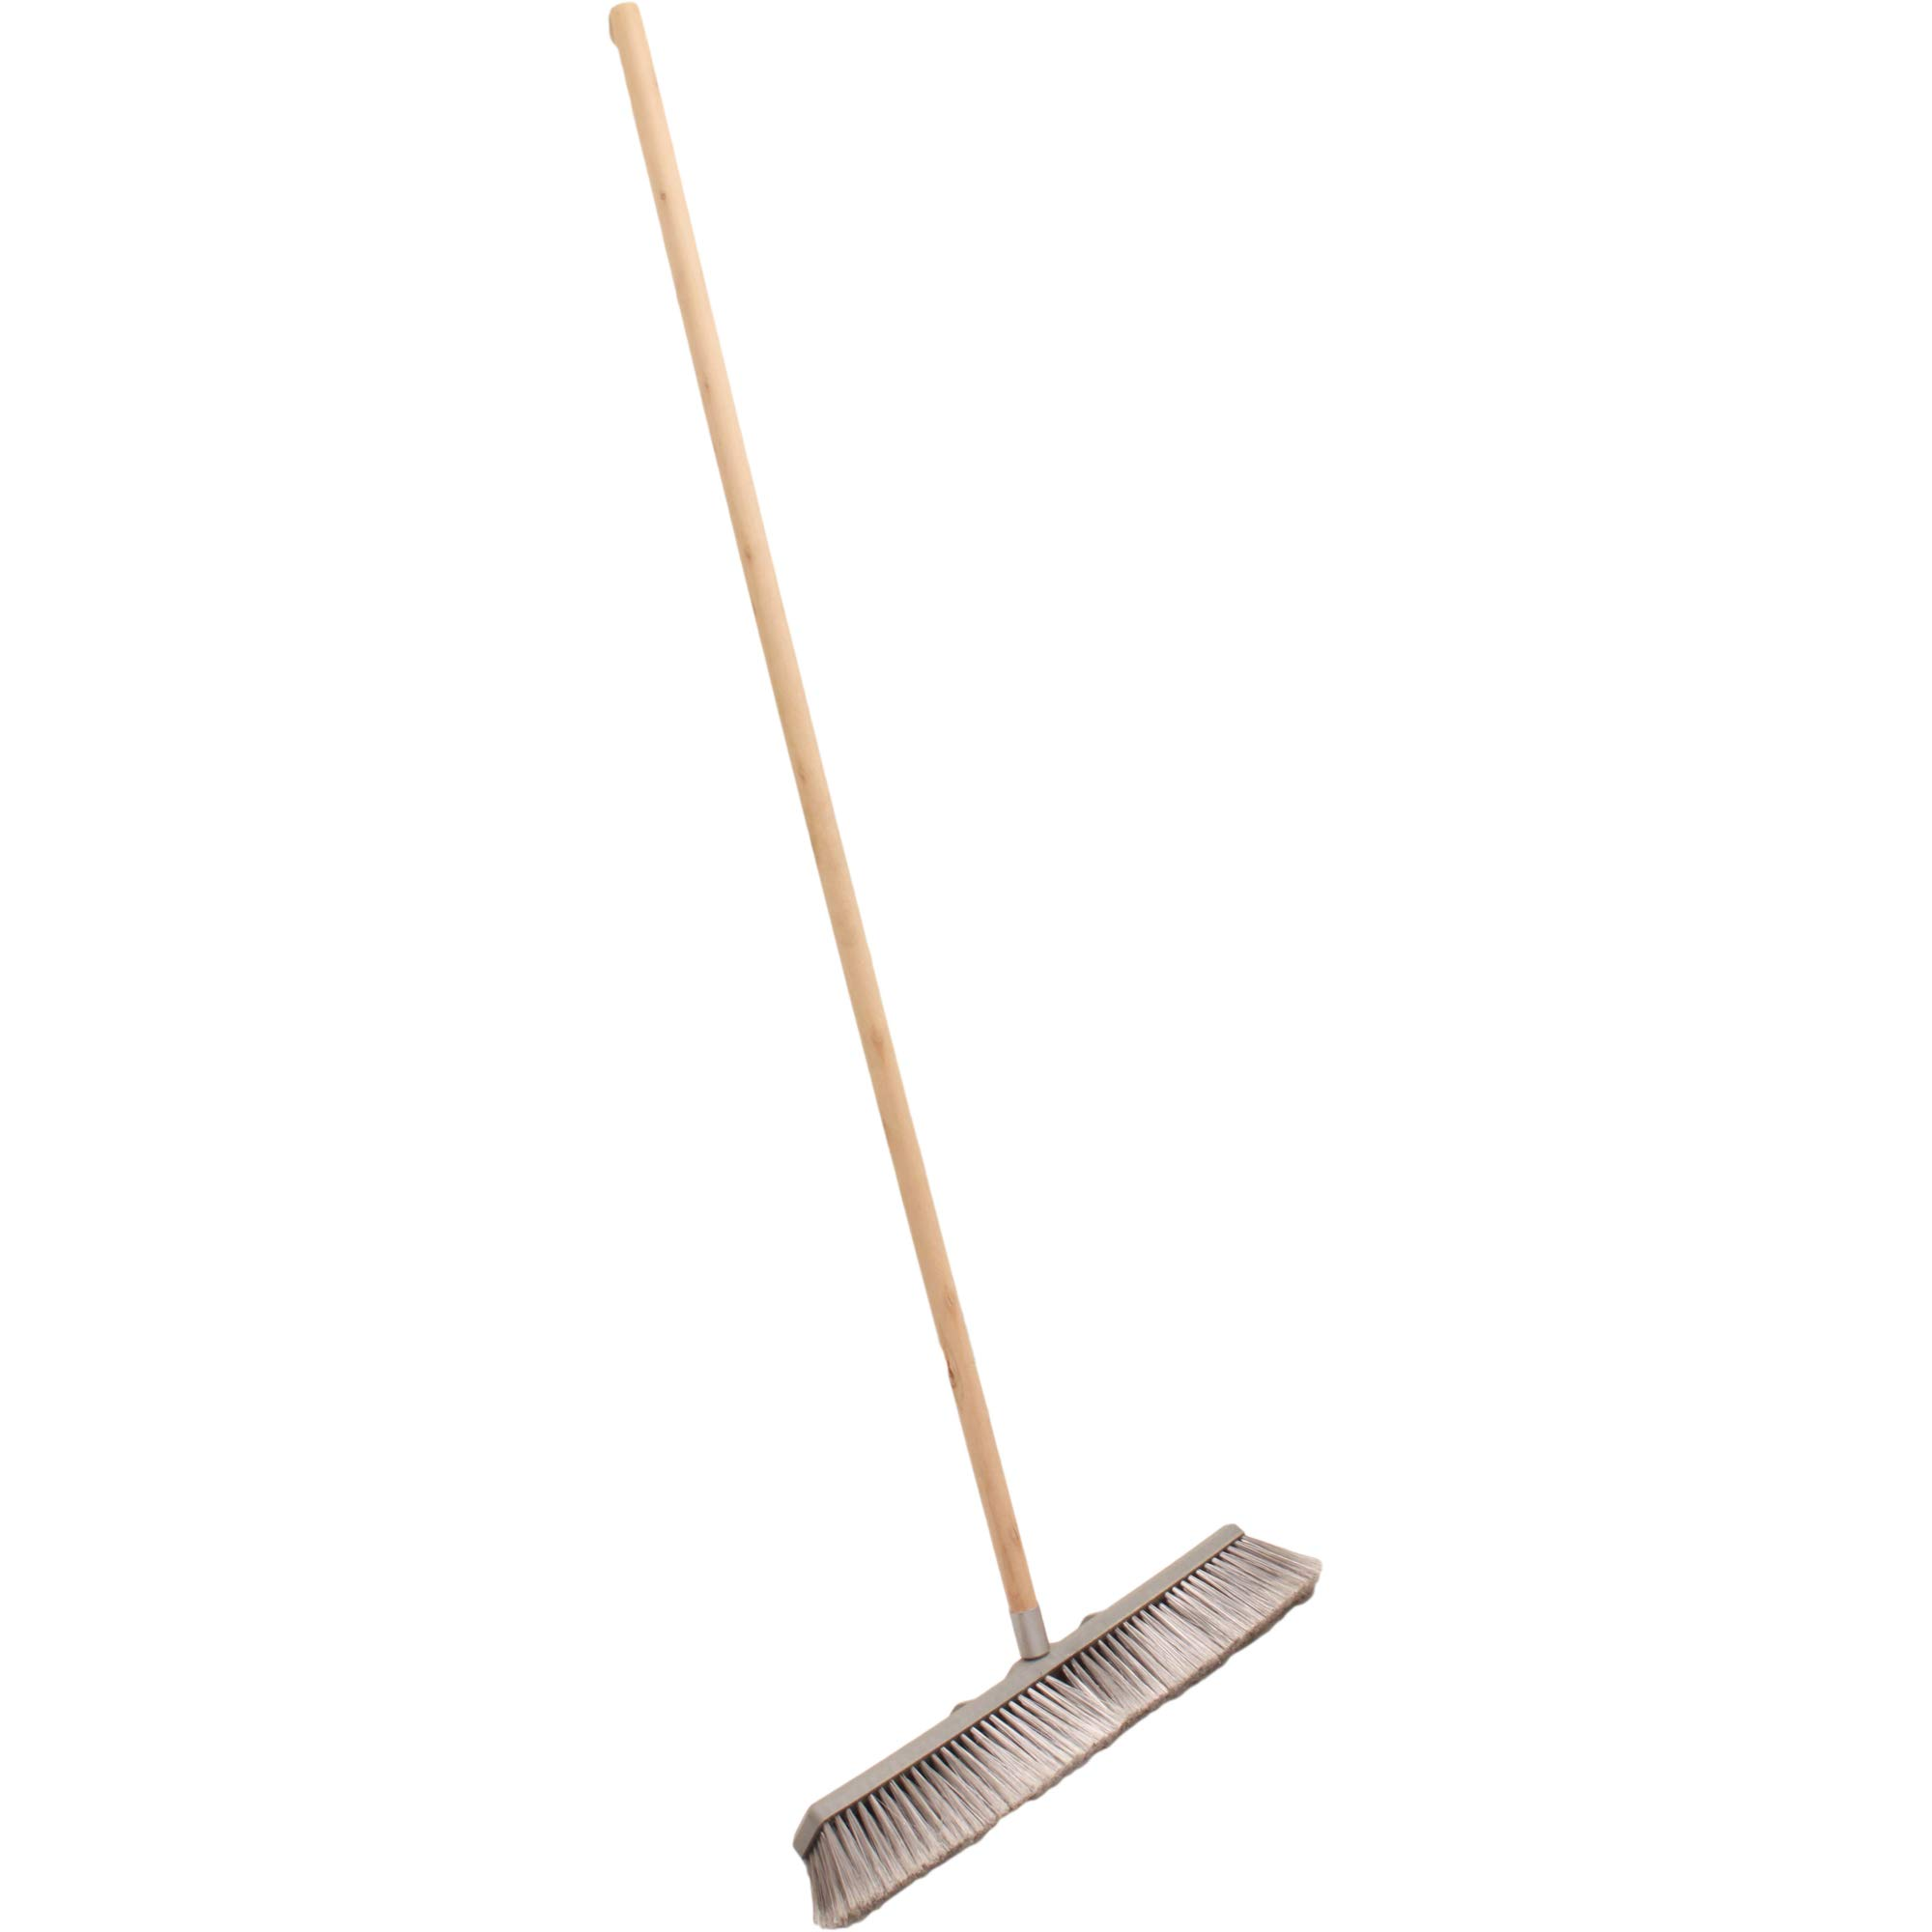 Professional Commercial Multi Surface Heavy Duty Industrial Push Broom Rough Surface Sweeper Brush With Stiff Bristles & Steel Wire Insert Warehouse & Contractors, Lawn & Garden, Indoor&Outdoor (Gray) by Unique Imports (Image #4)